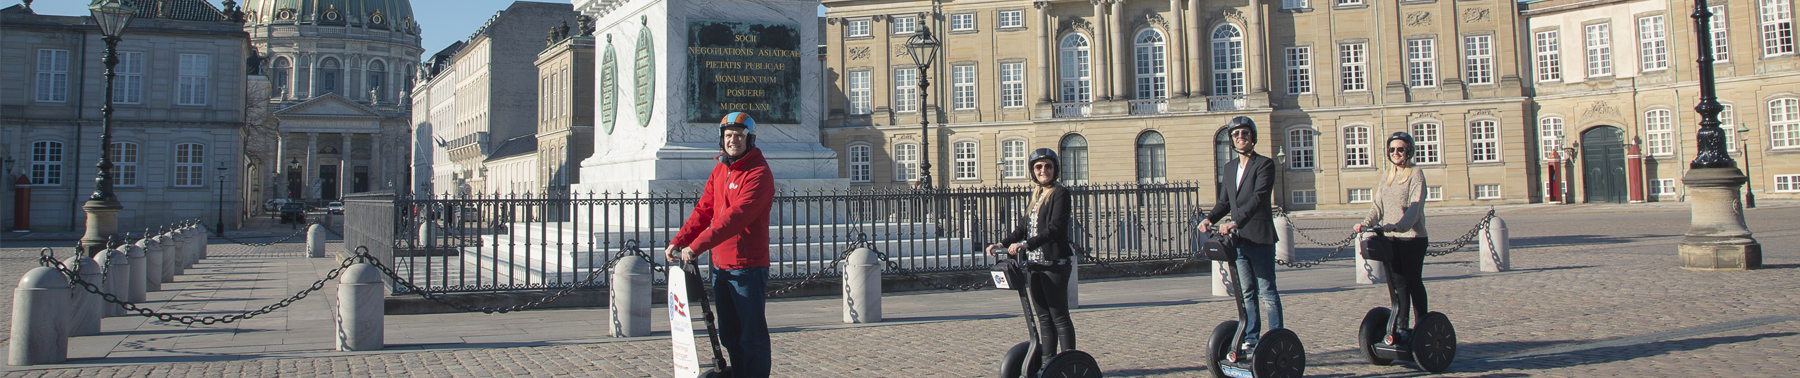 Segway Sightseeing Tours at The Royal Palace